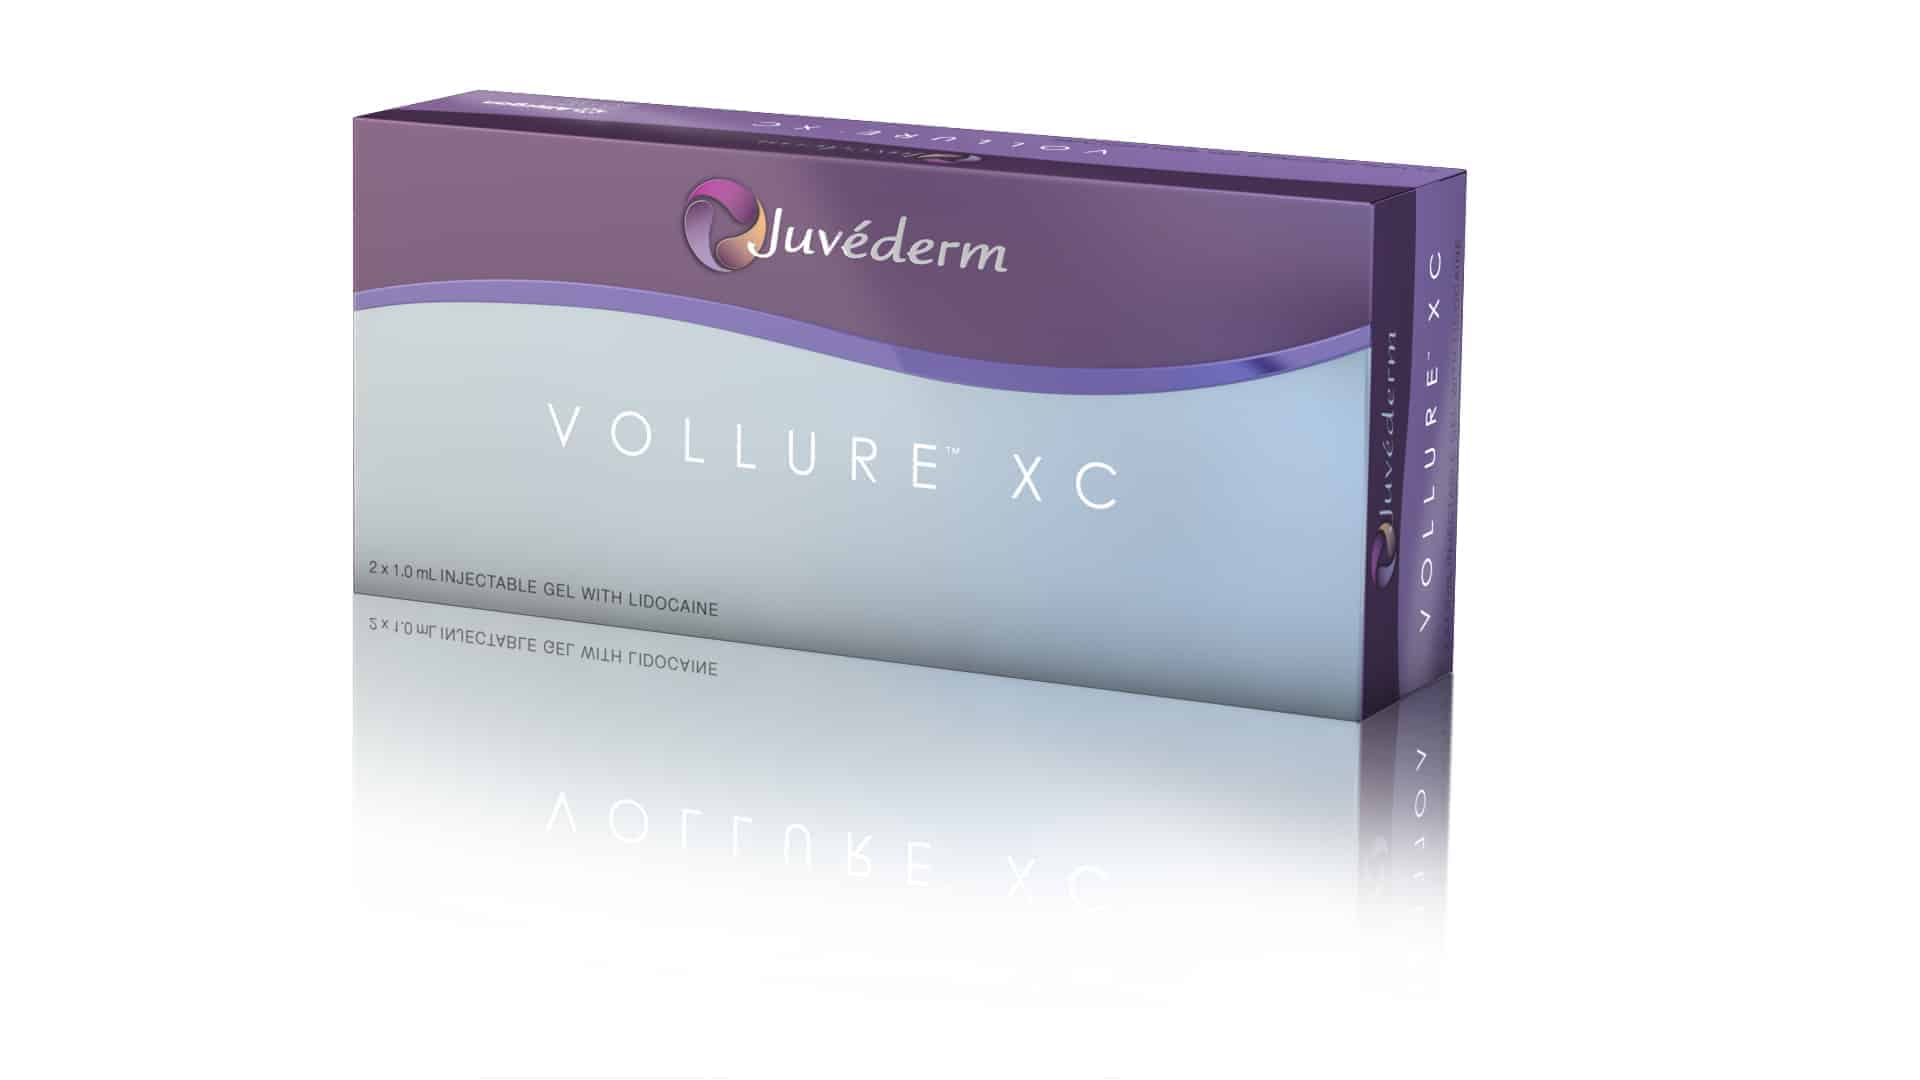 Juvederm Vollure at NG Aesthetics